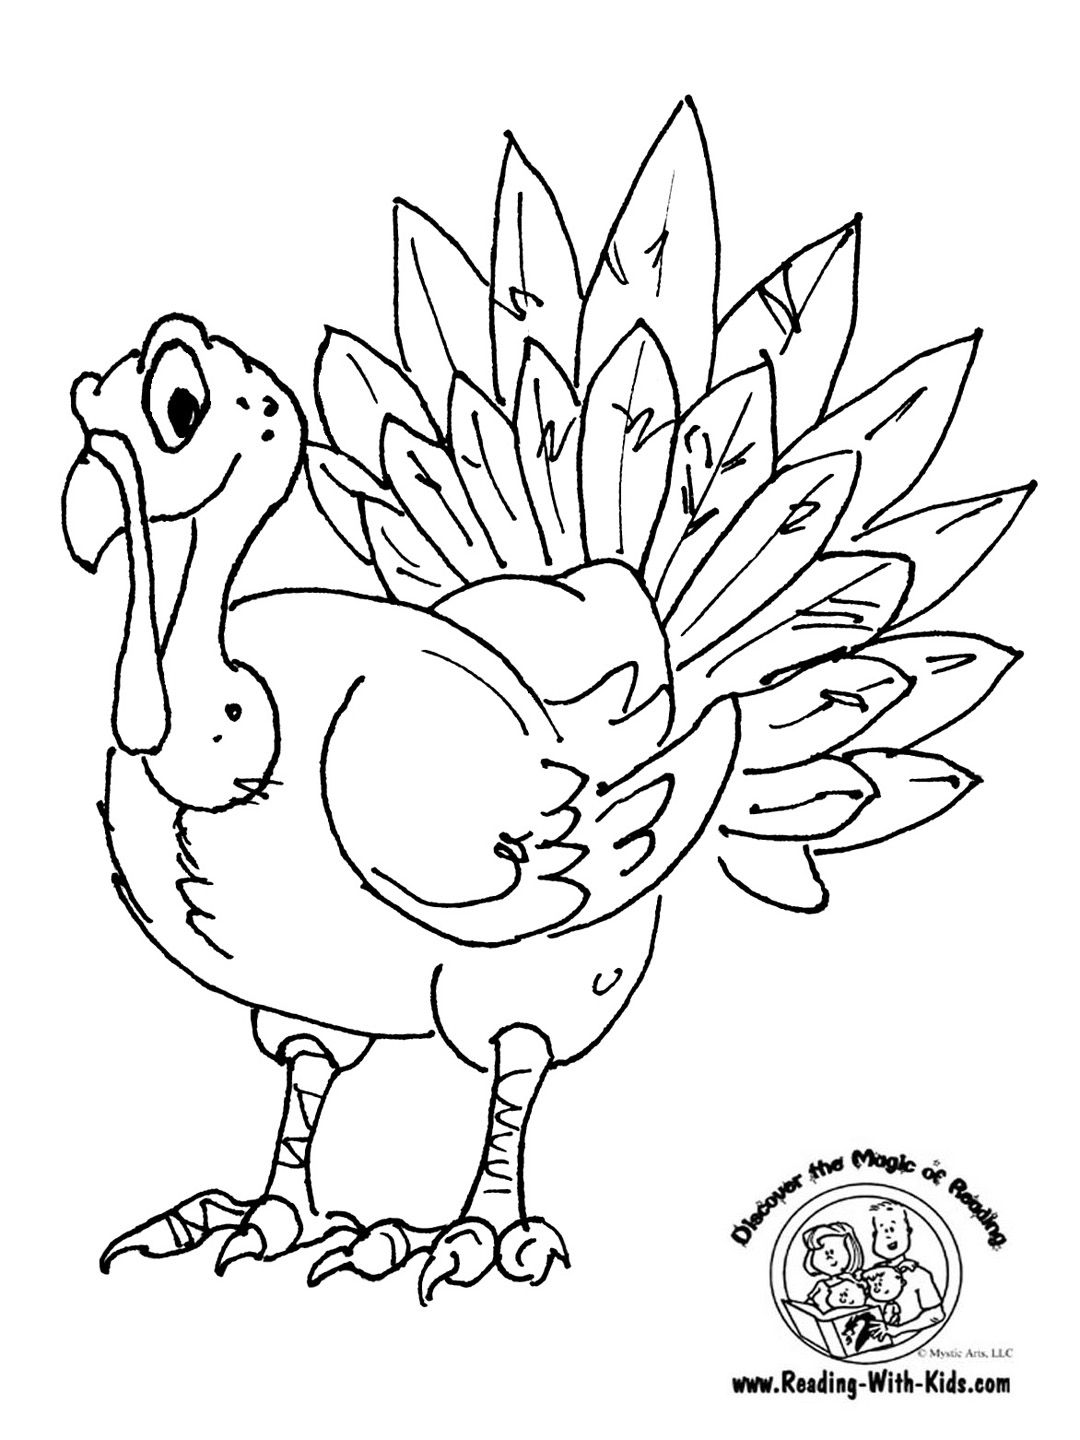 Pin By Gina Cline On Thanksgiving | Thanksgiving Coloring